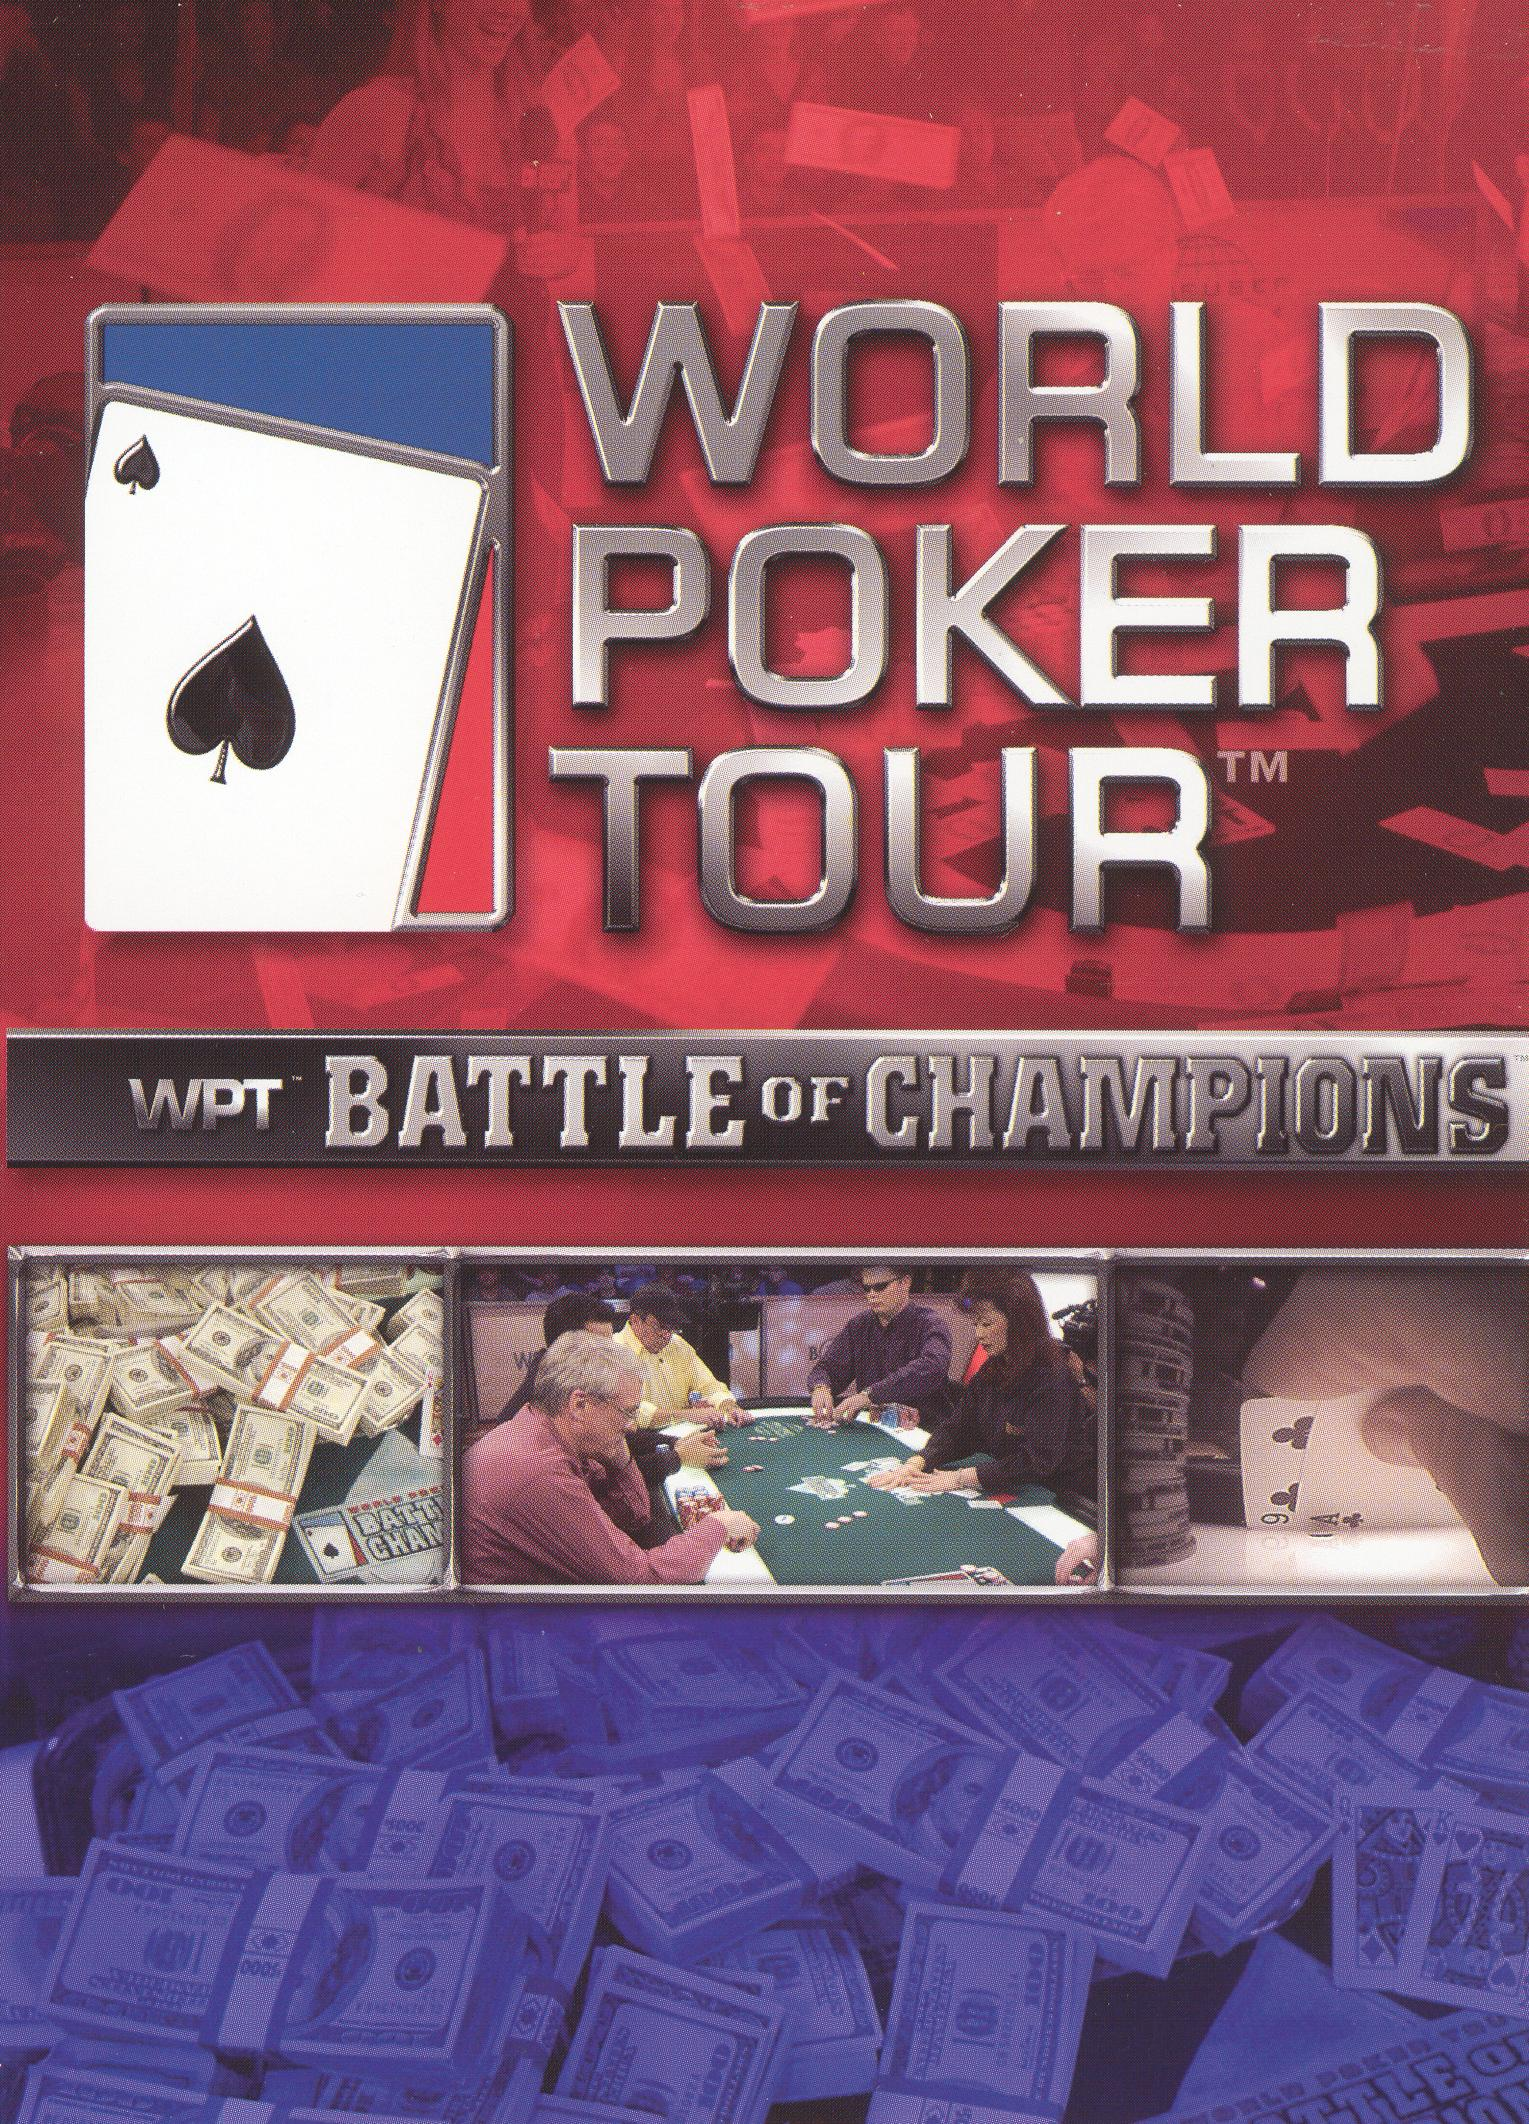 World Poker Tour: WPT Battle of Champions